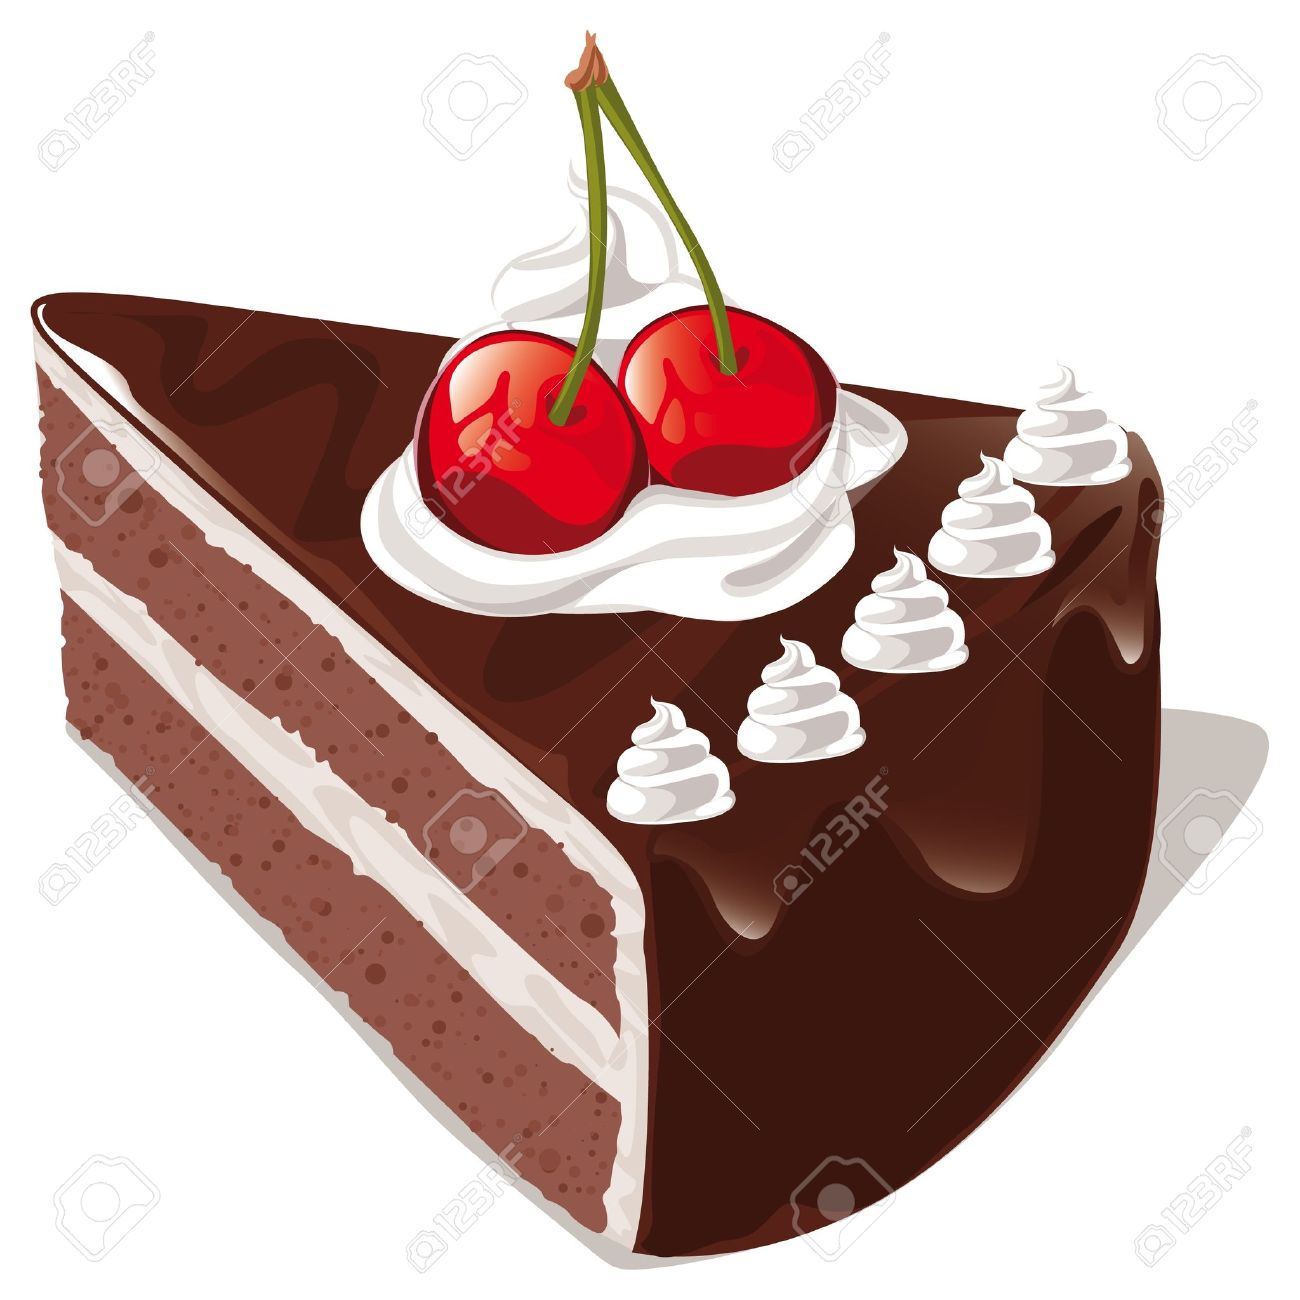 Chocolate Cake Royalty Free Cliparts, Vectors, And Stock.